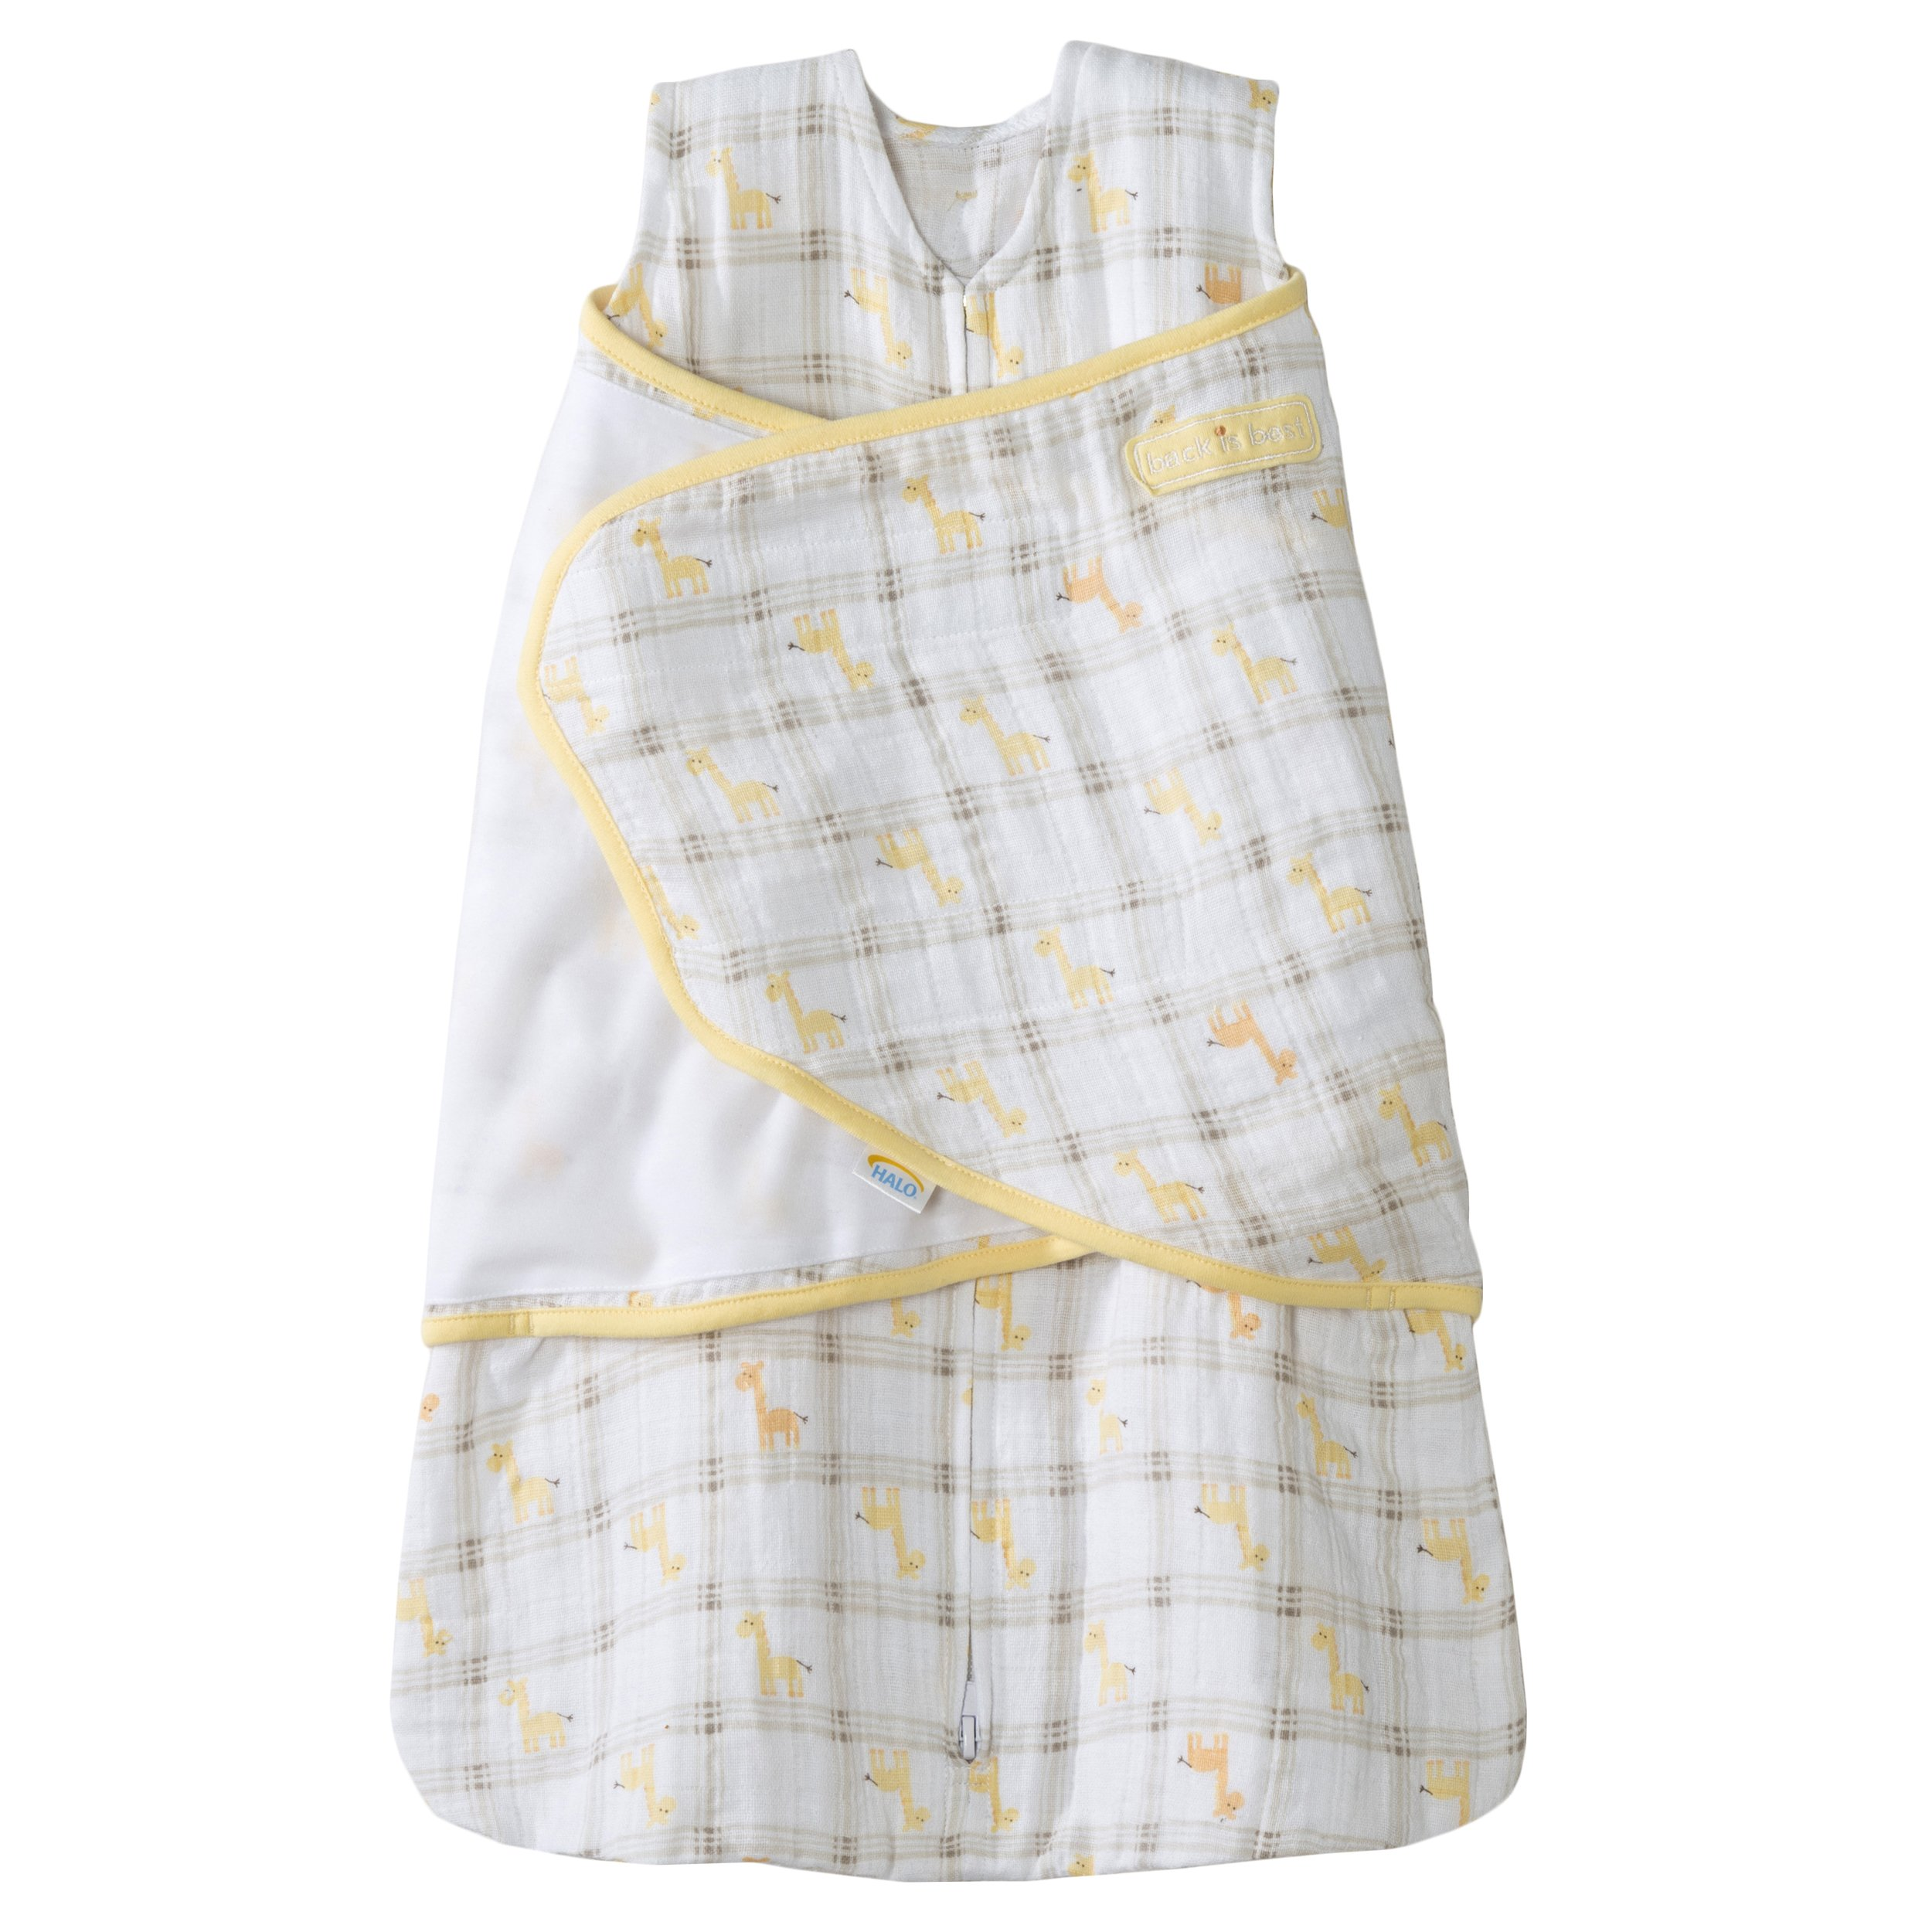 HALO 100% Cotton Muslin Sleepsack Swaddle, Giraffe Plaid, Small